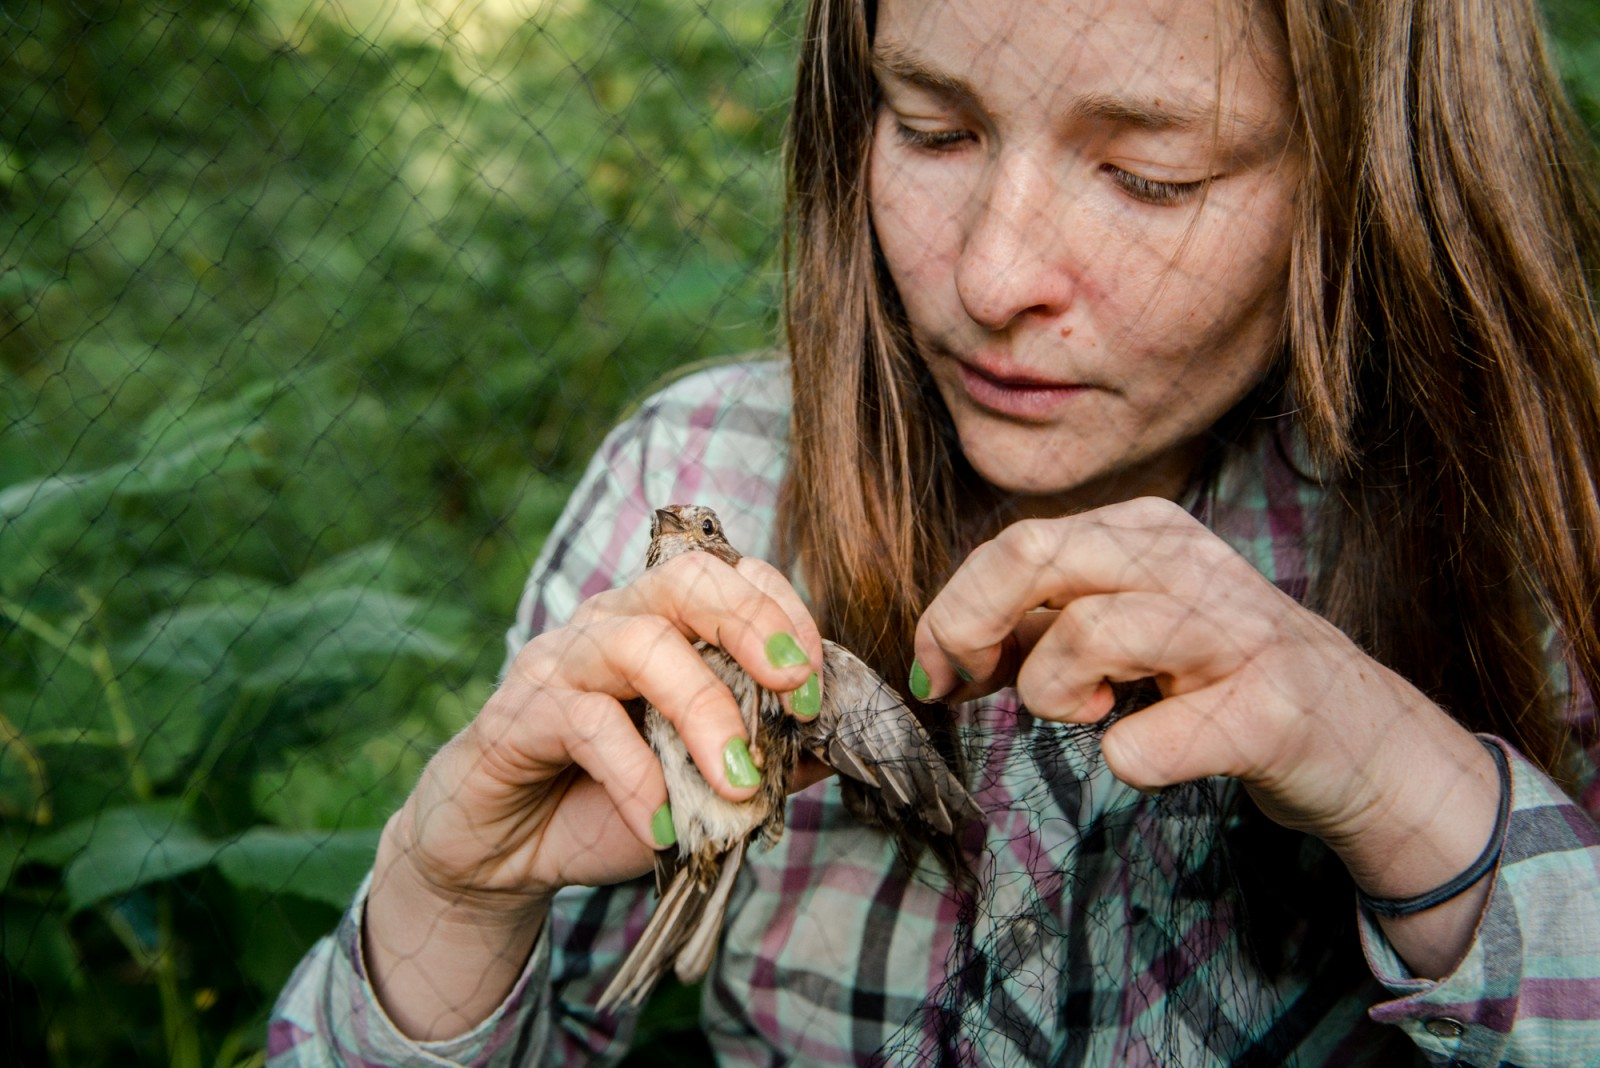 Gently removing a song sparrow from a bird net.